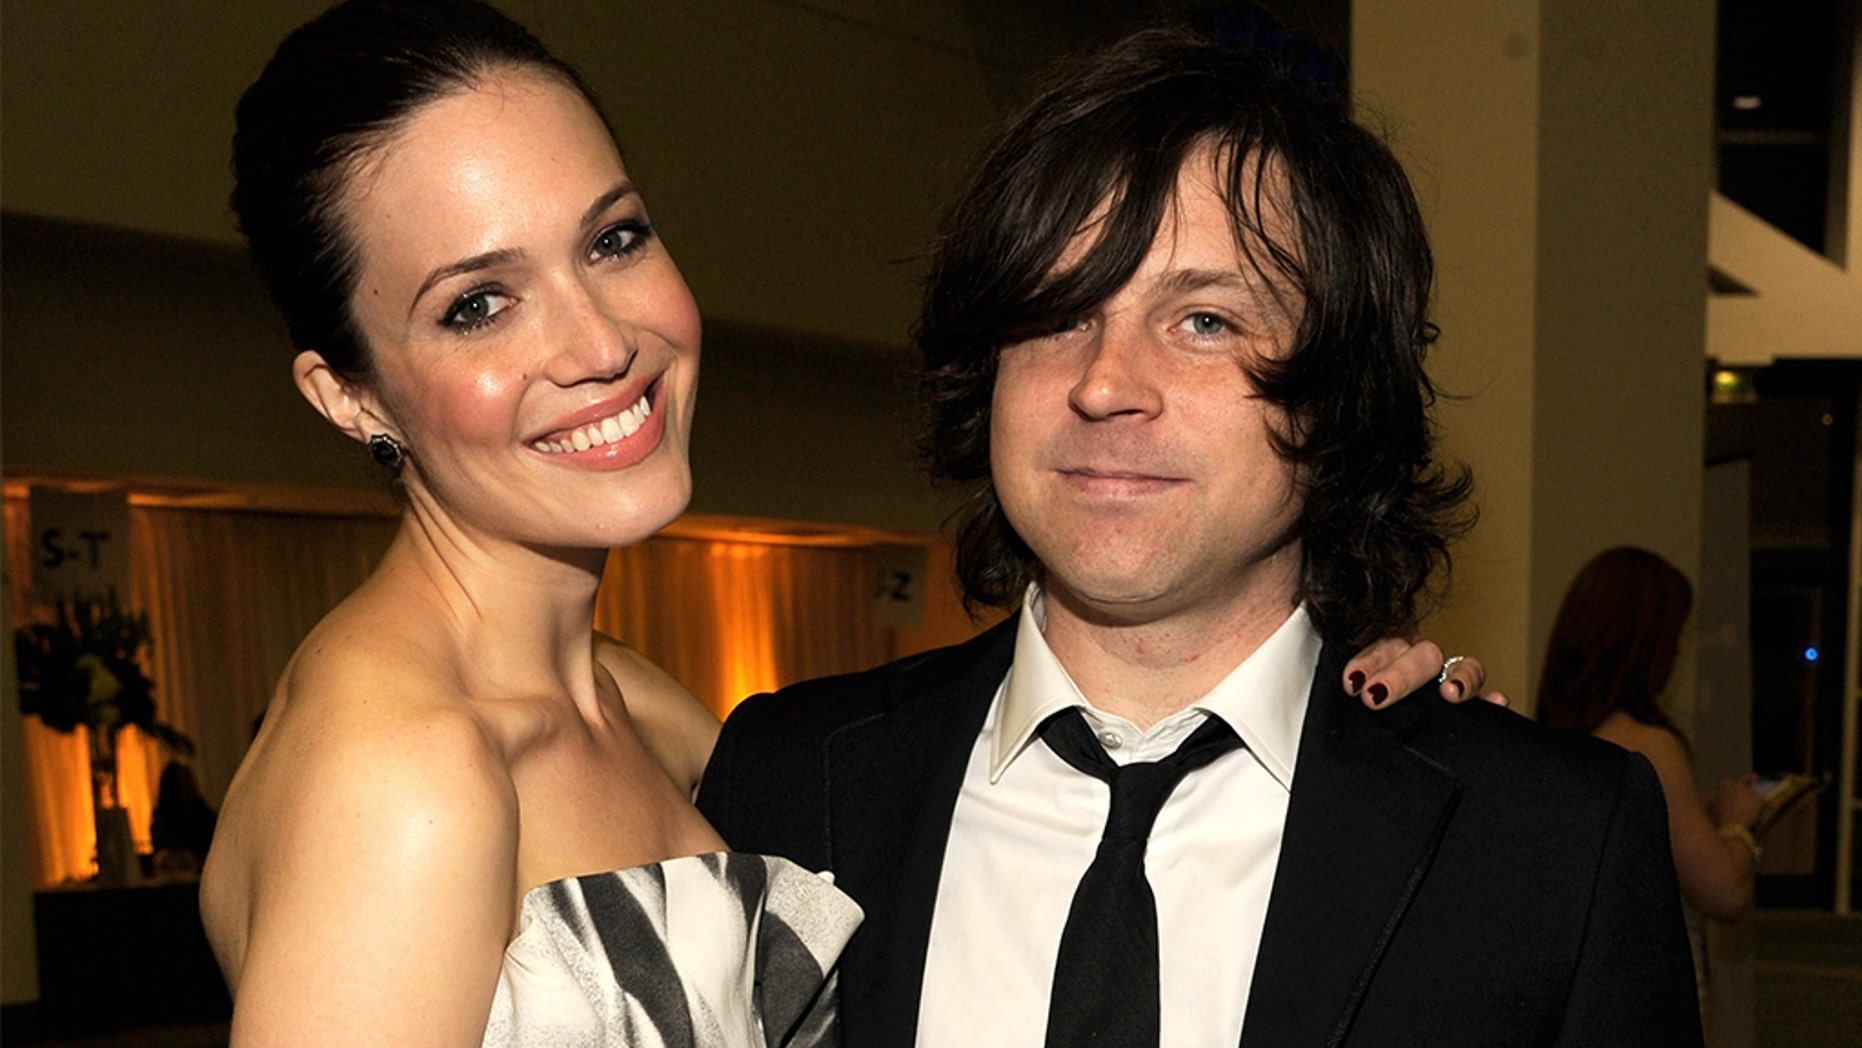 Mandy Moore, left, alleged in a New York Times report that her ex, Ryan Adams, was emotionally abusive and controlling of her career.